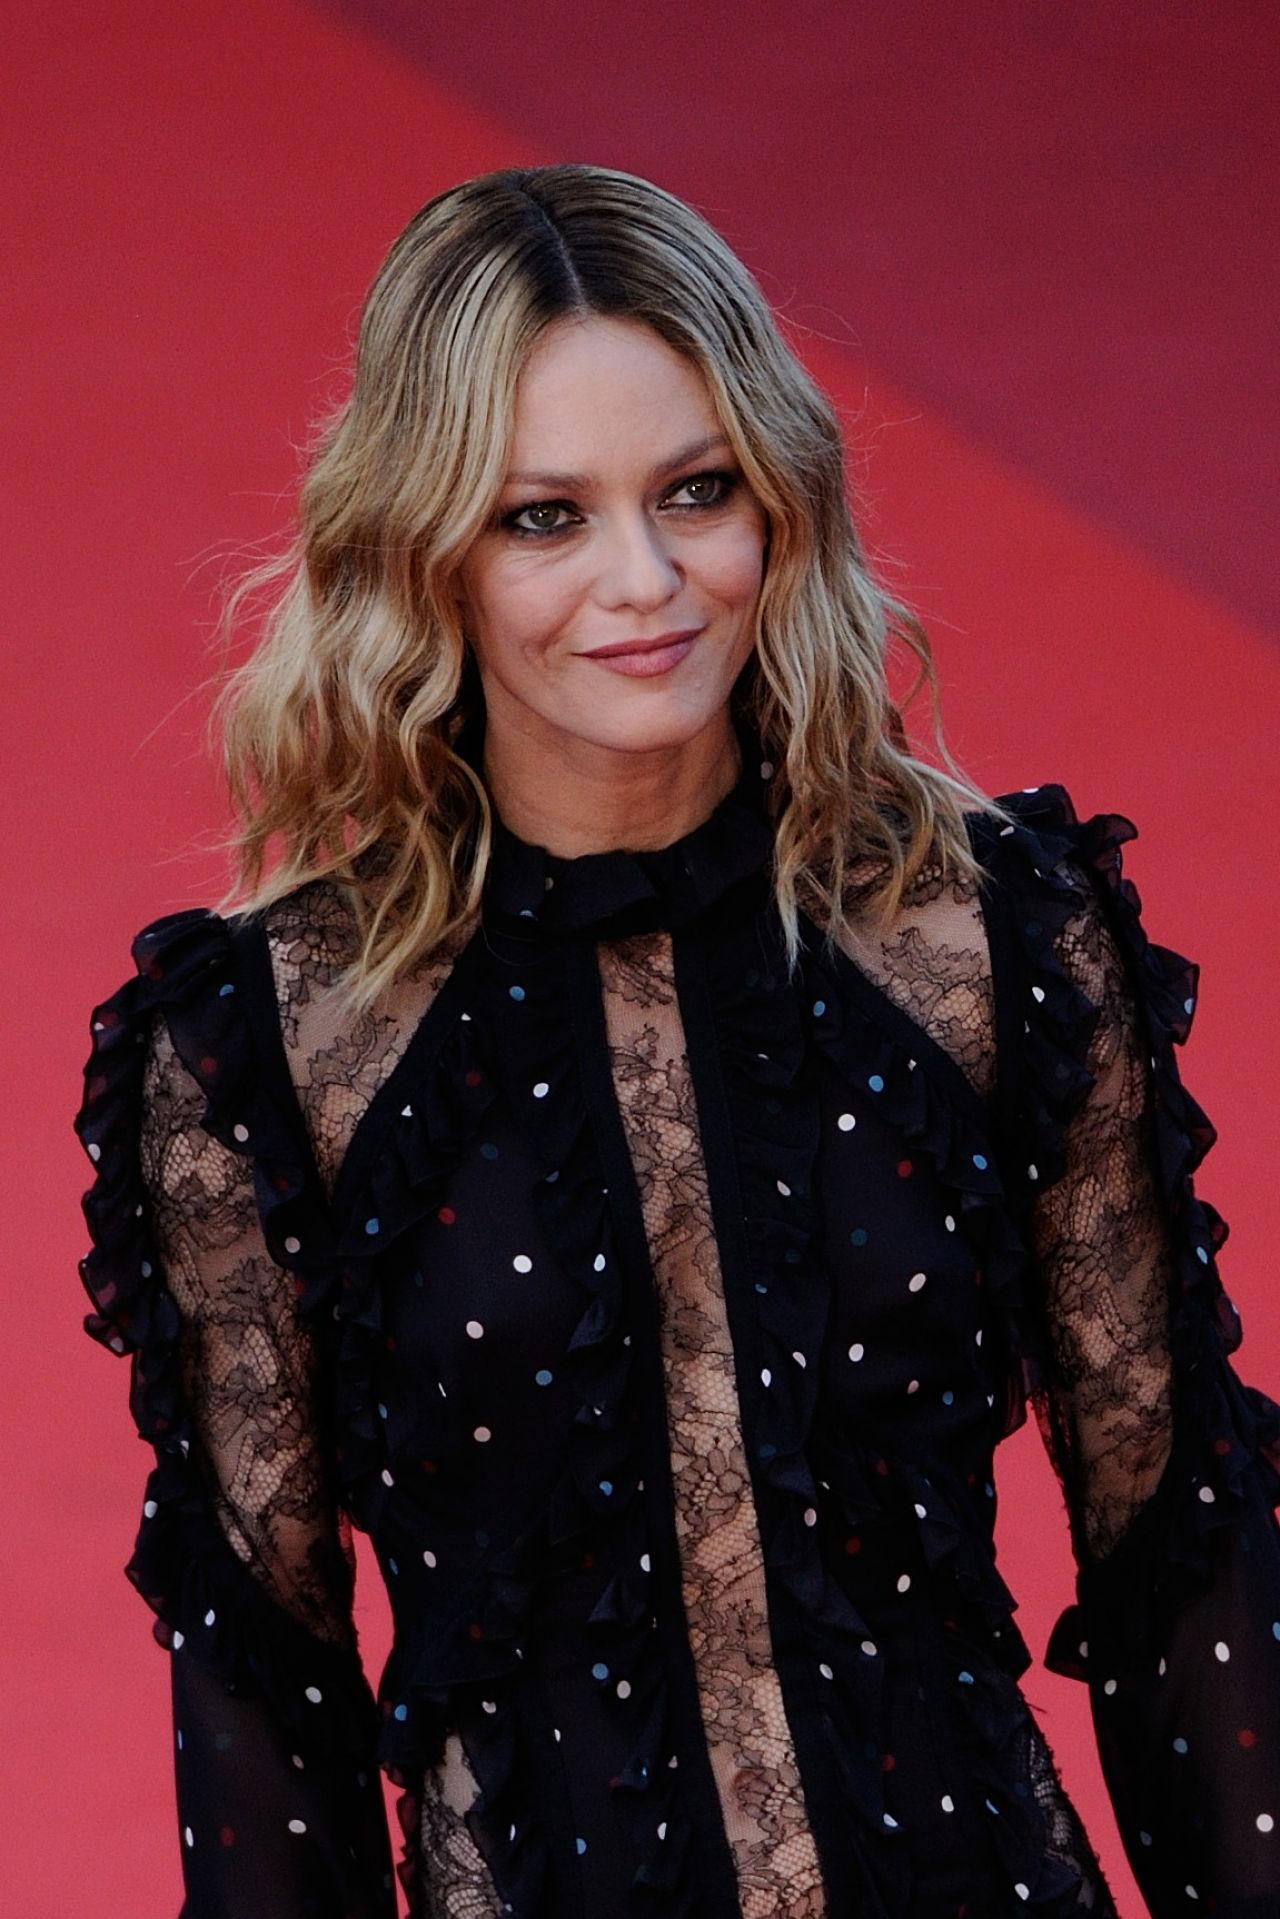 vanessa paradis 39 mal de pierres 39 premiere at cannes film festival 5 15 2016. Black Bedroom Furniture Sets. Home Design Ideas